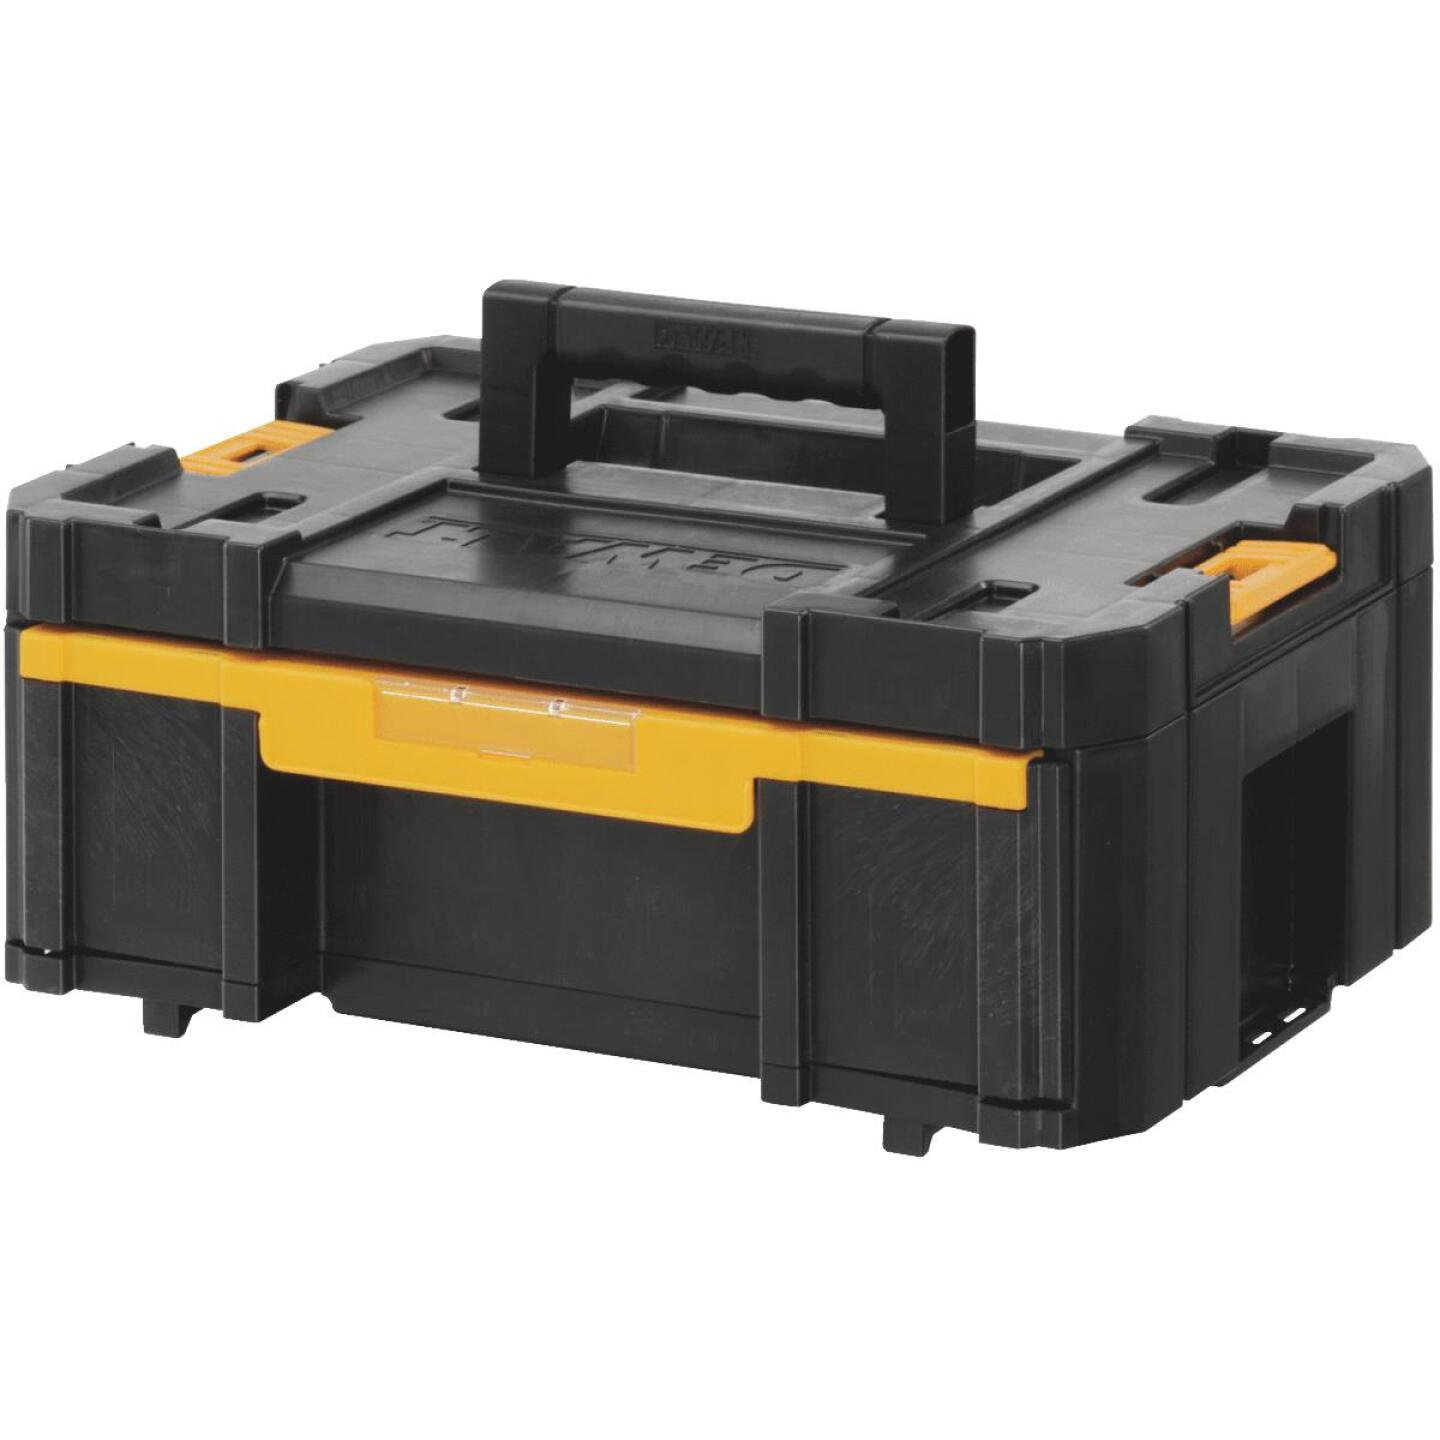 Dewalt TSTAK Deep Drawer Toolbox with Deep Drawers Image 1